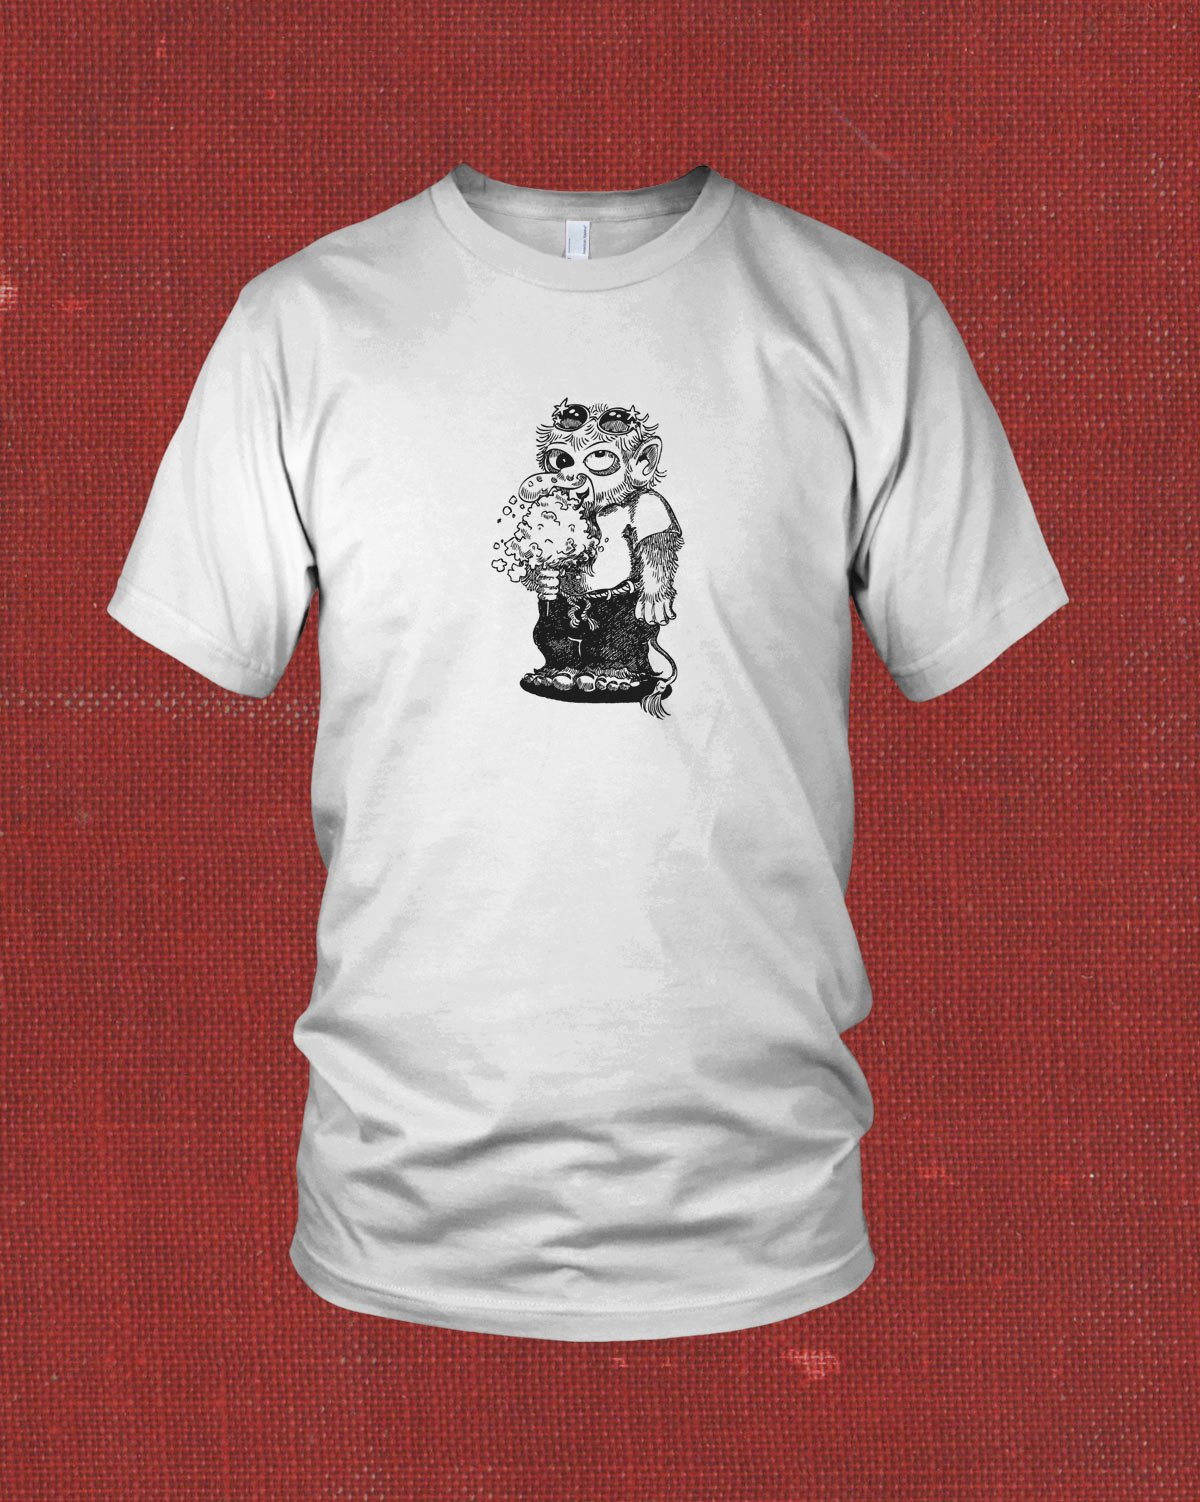 Magnus and jenner book promotion t shirts evan webster ink for Custom photo t shirts front and back